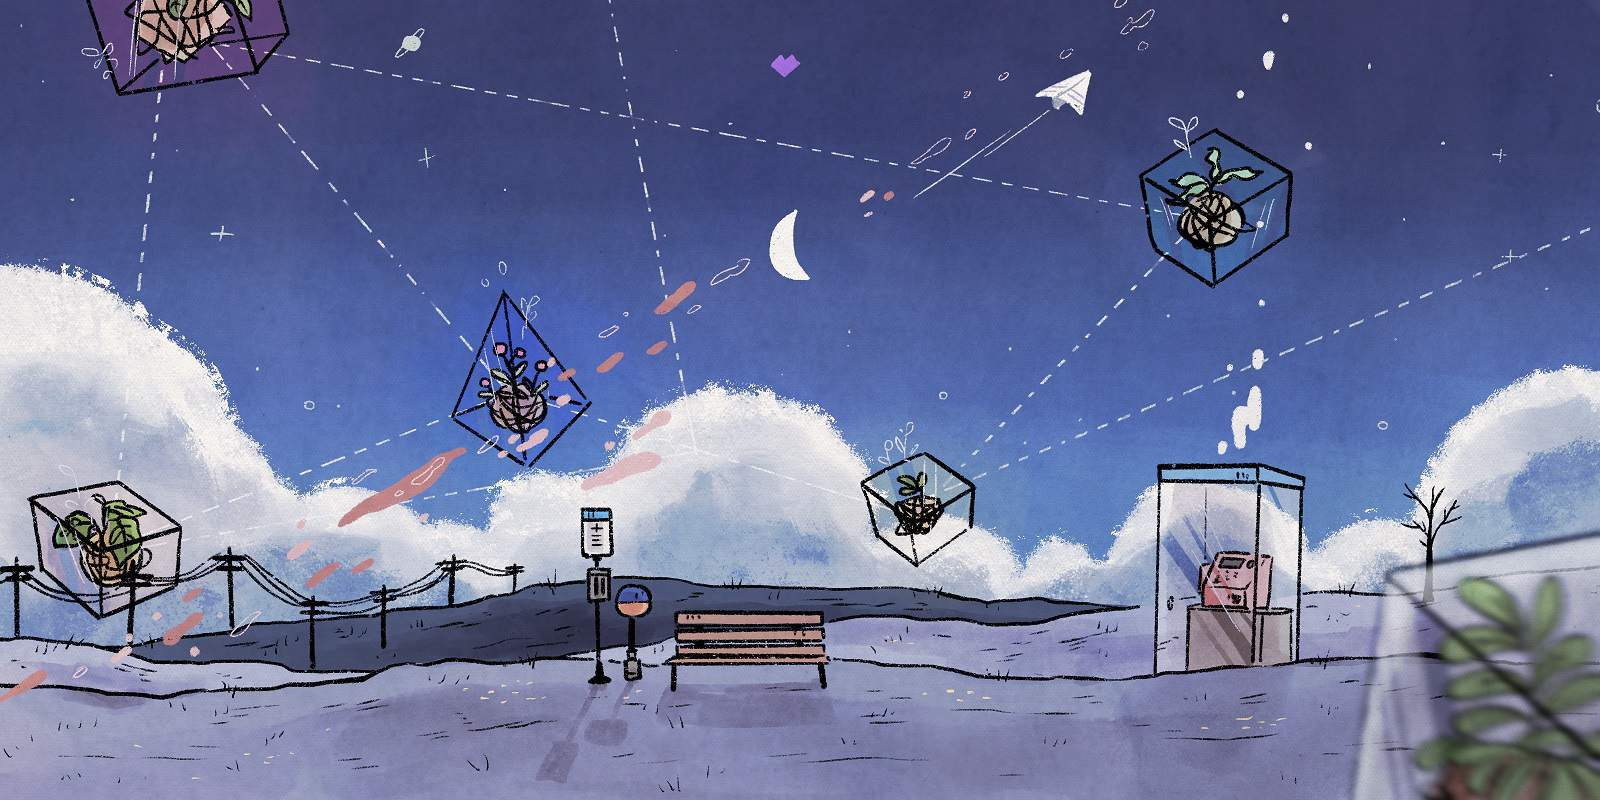 Illustration depicting the interconnection of BTS concepts in an outdoor setting